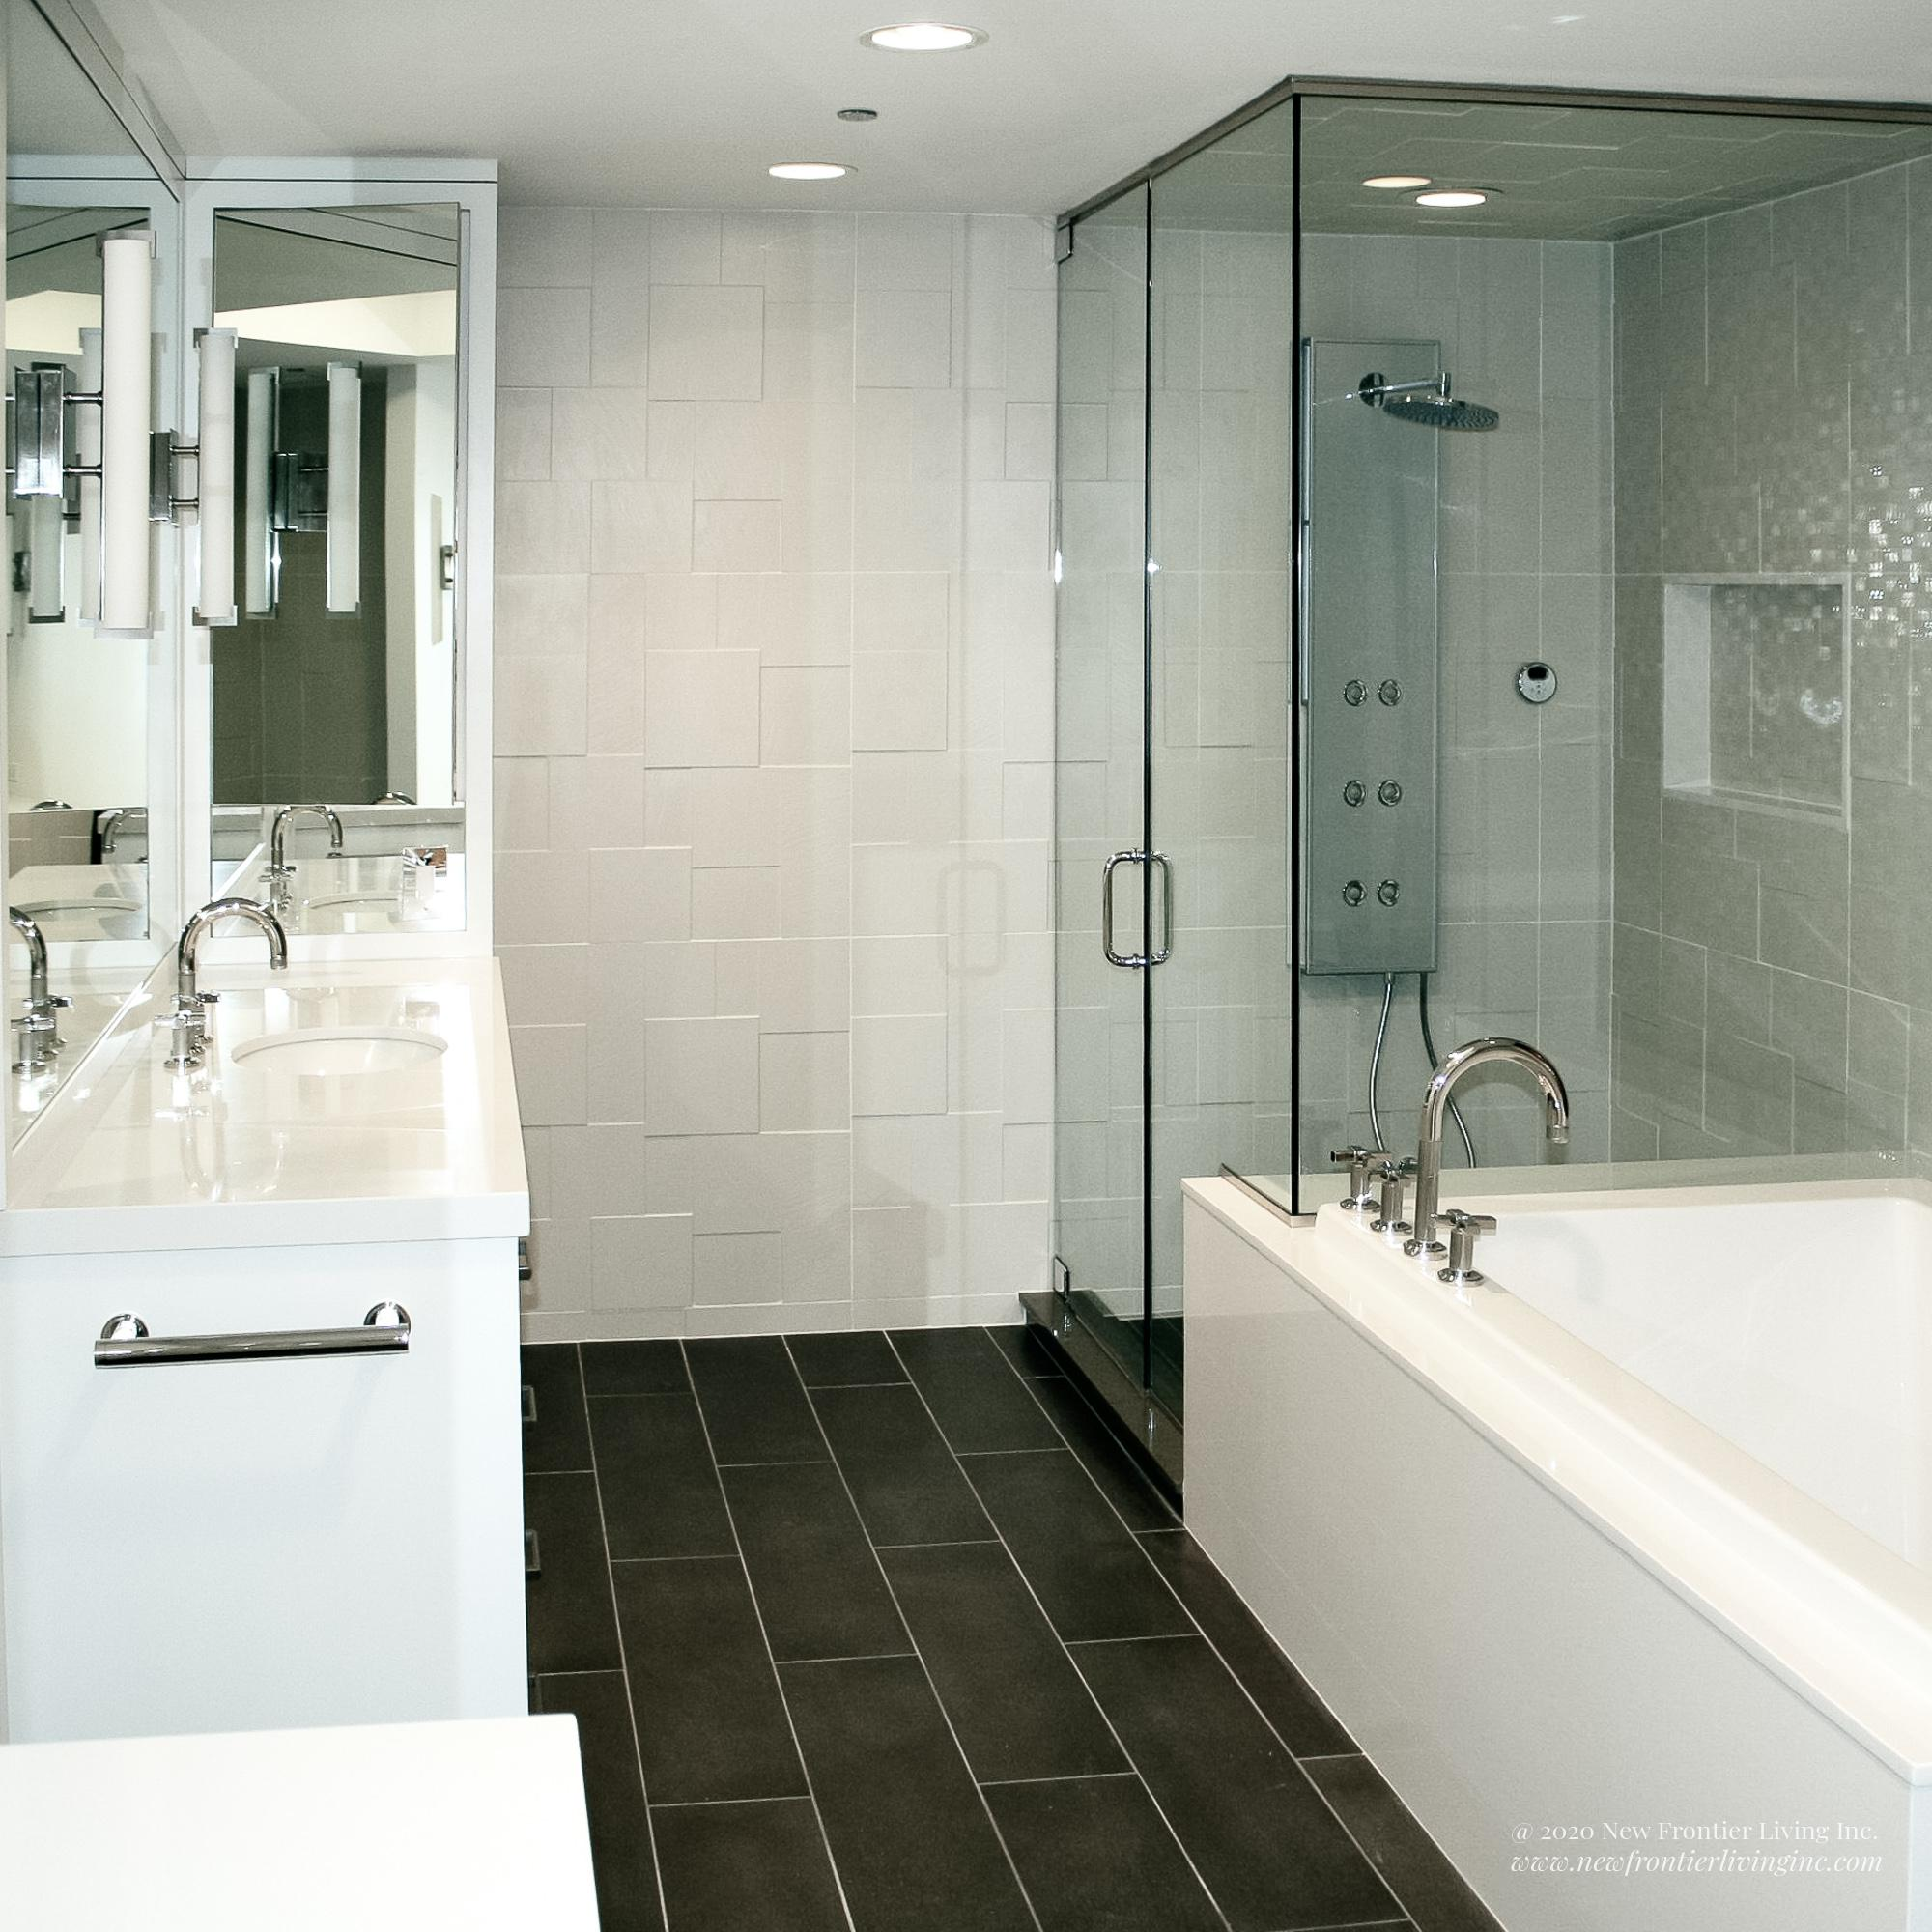 White bathroom installed by NFL Inc. mirror and vanity with shower and tub